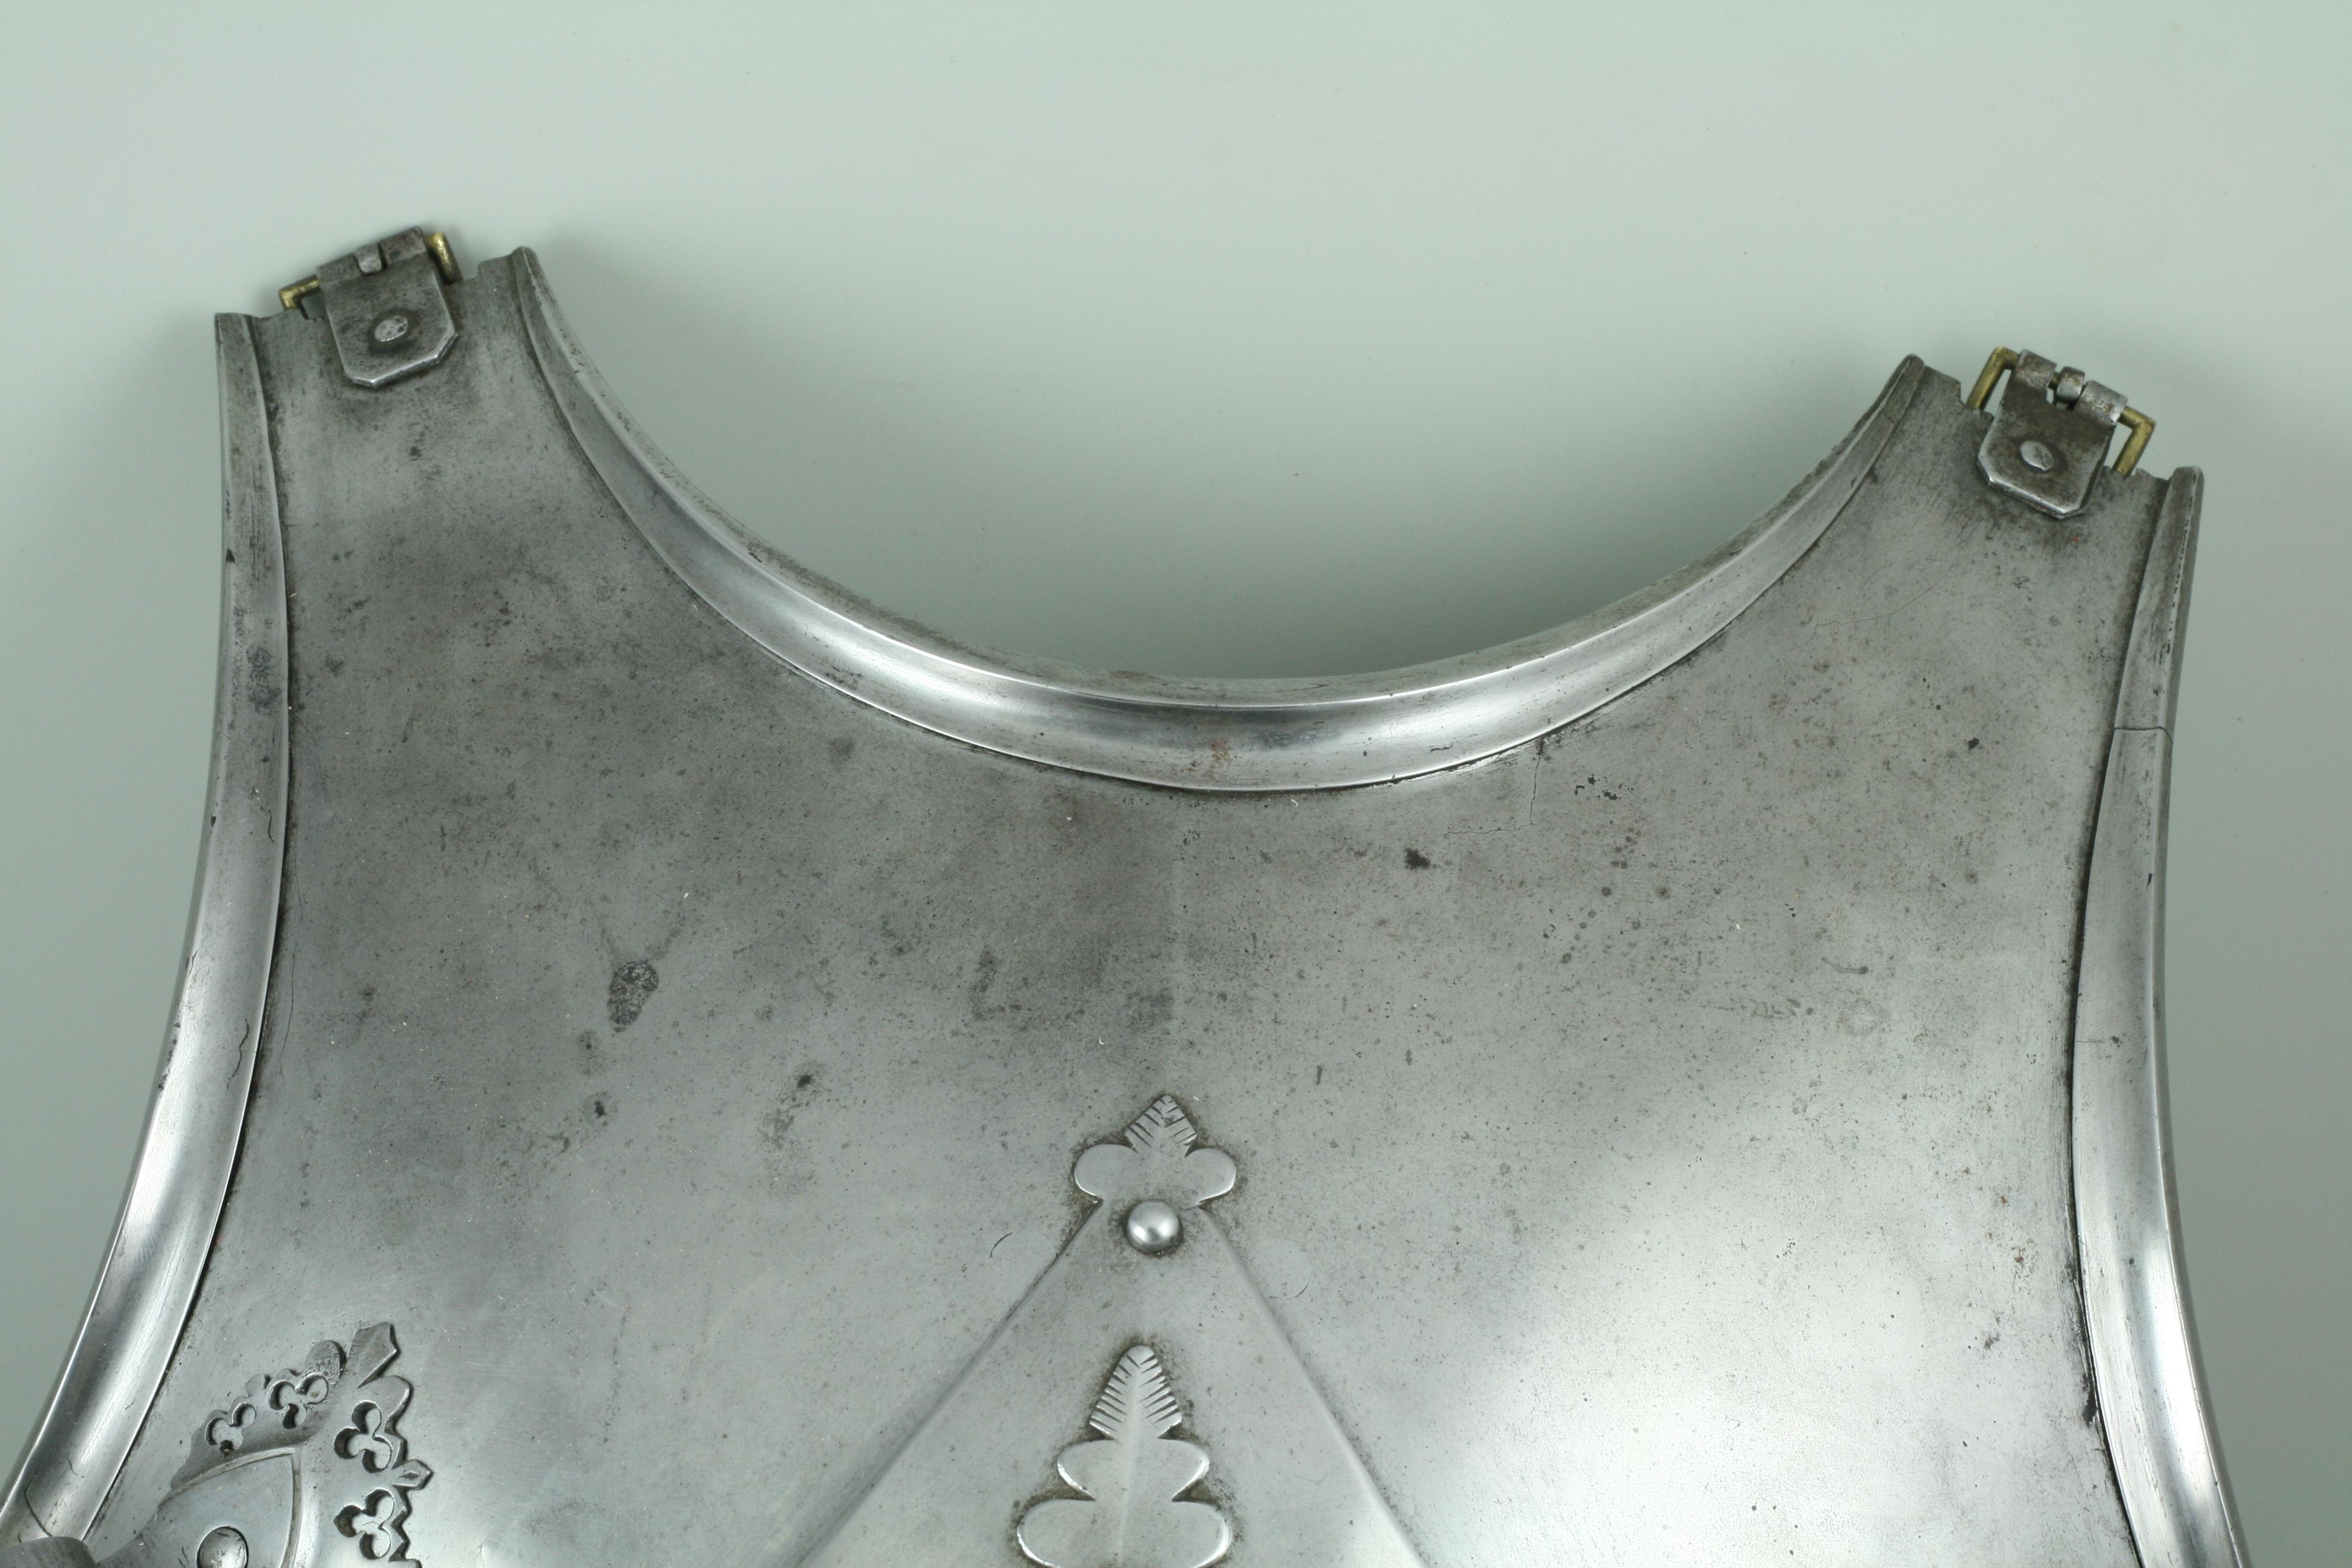 Rolls on the edges of a breastplate